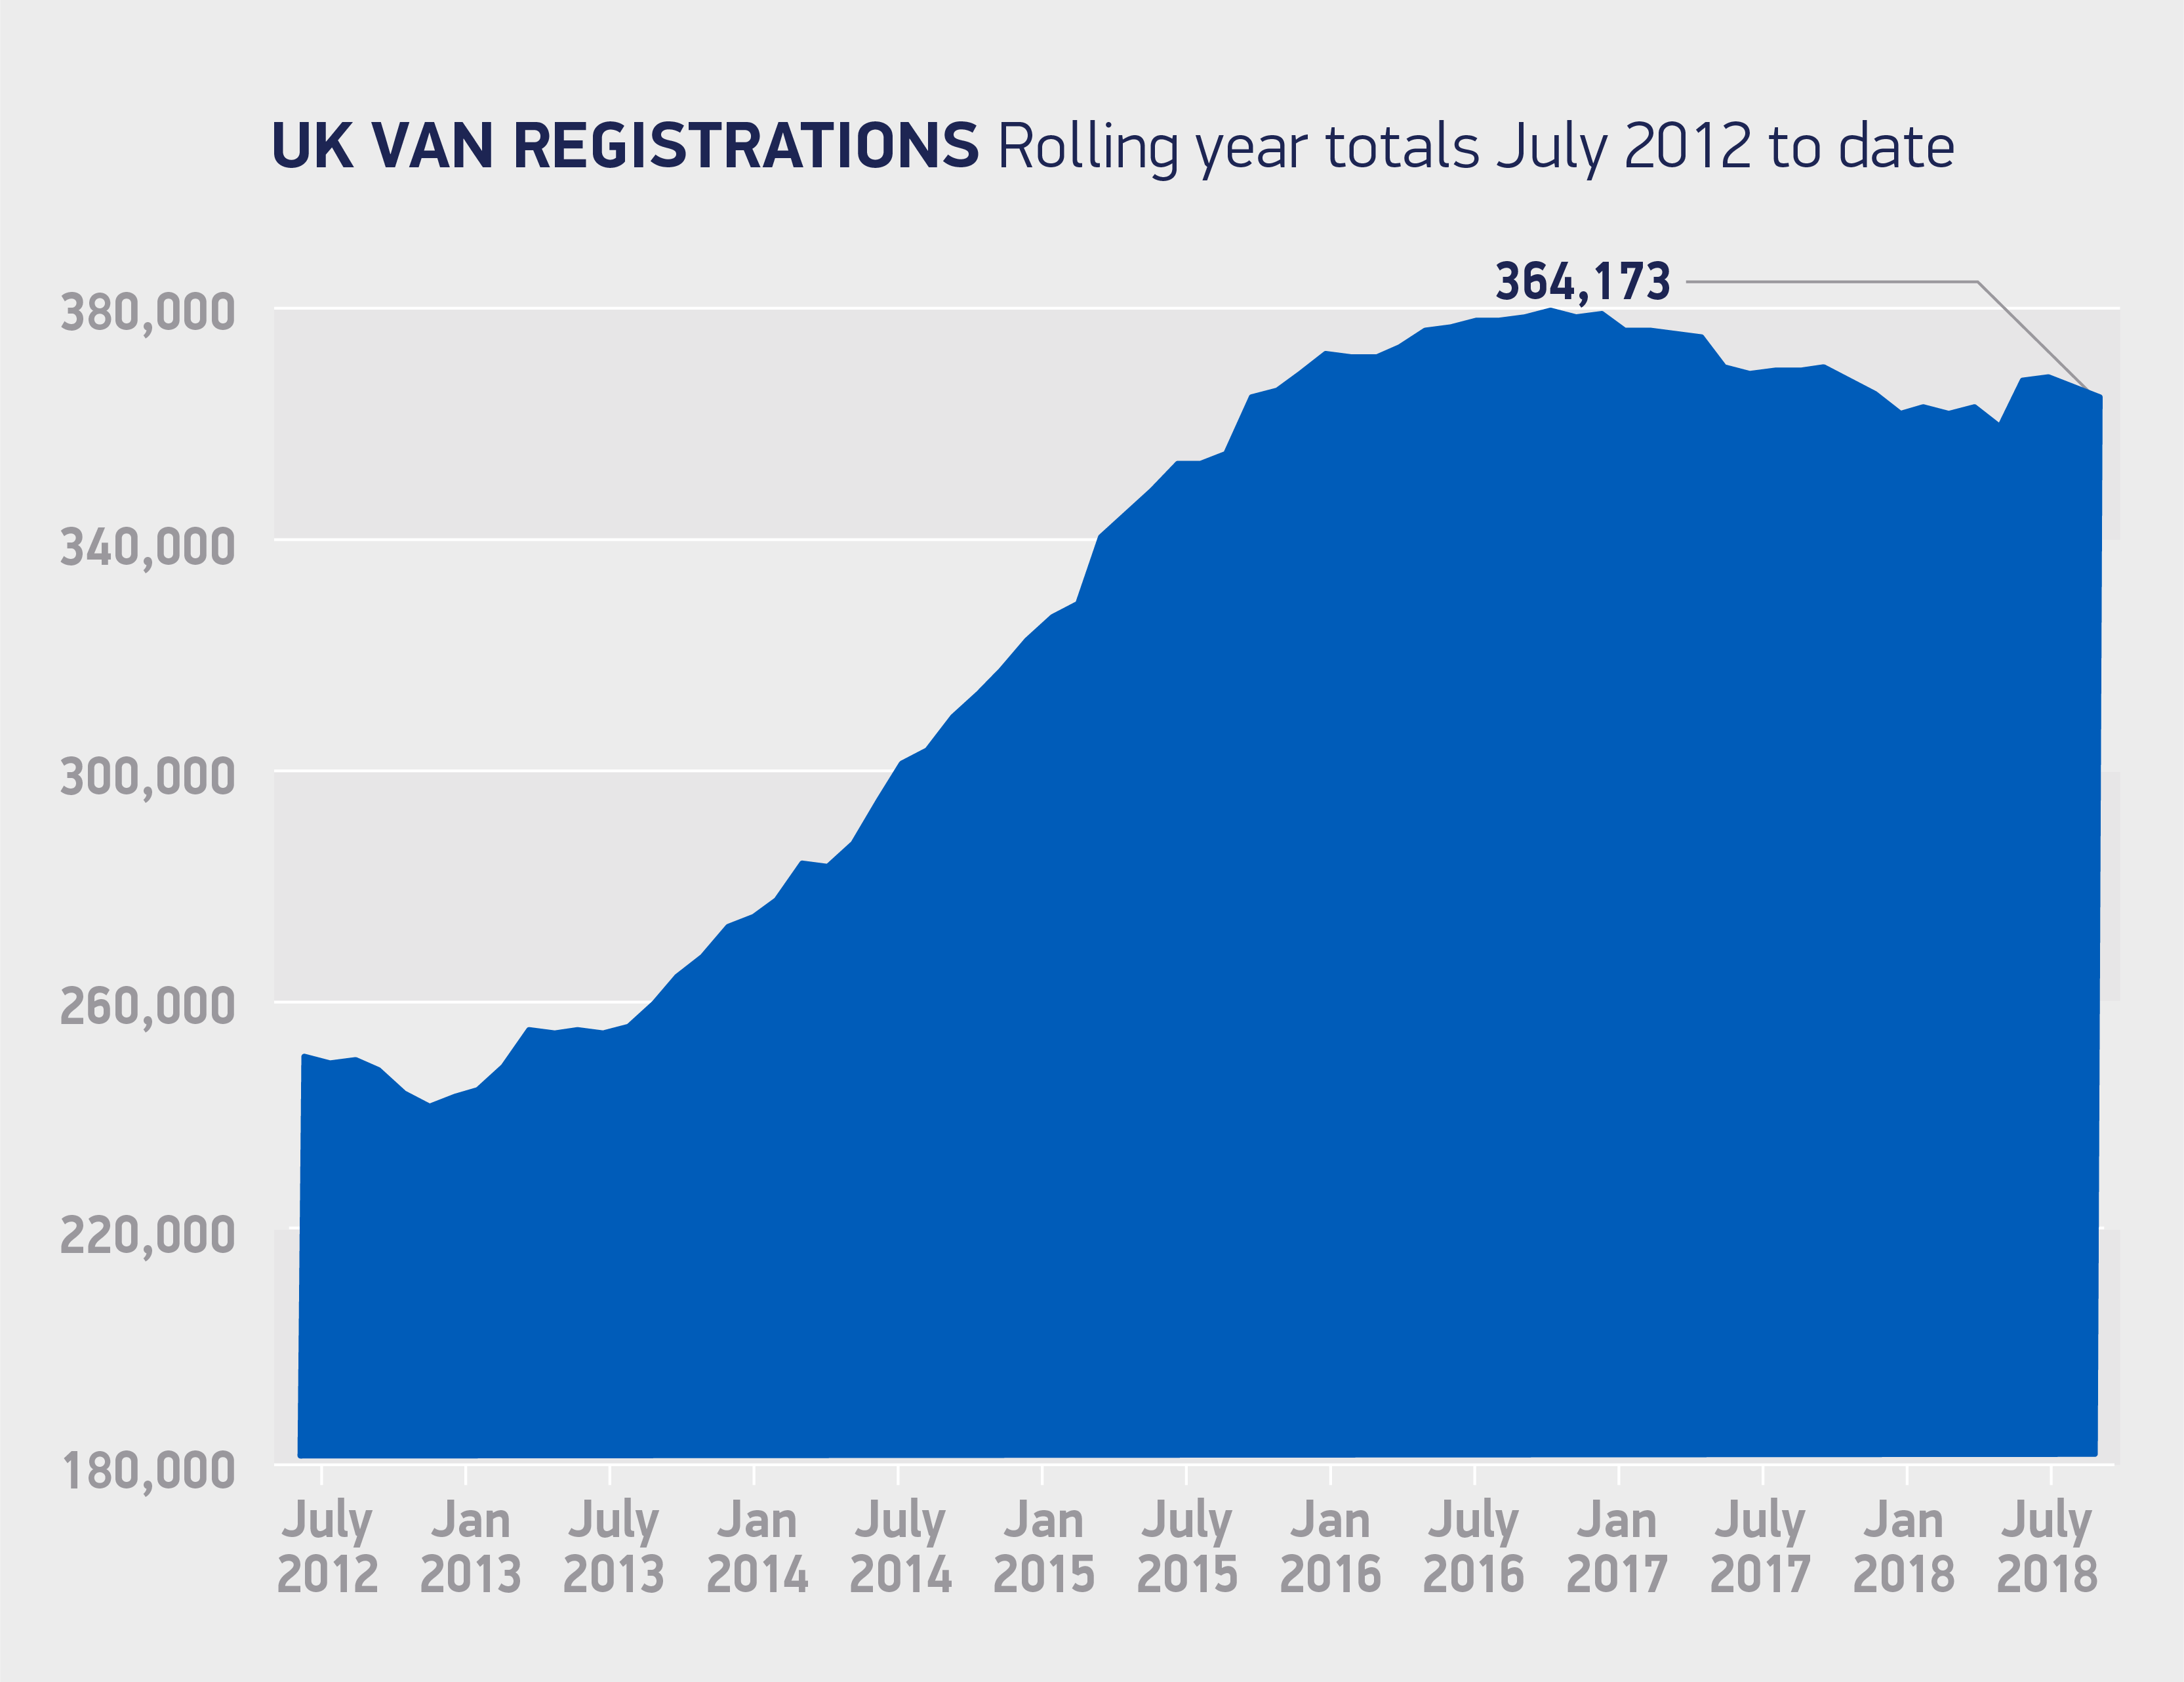 Van registrations rolling year totals July 2012 to date 2018 chart